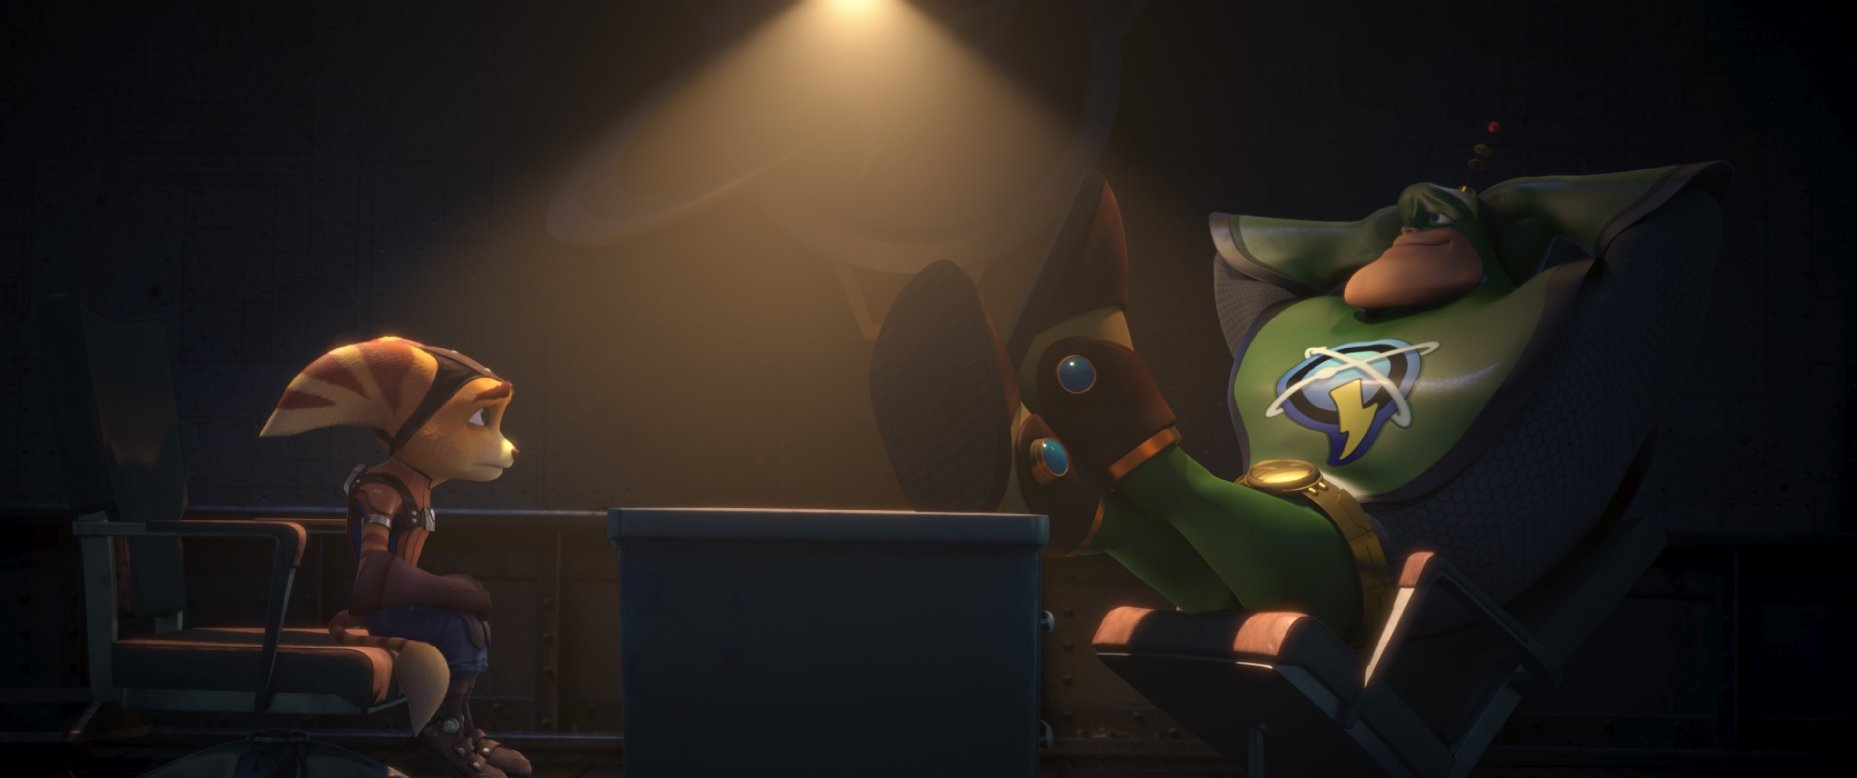 ratchet and clank filme ana pn 2